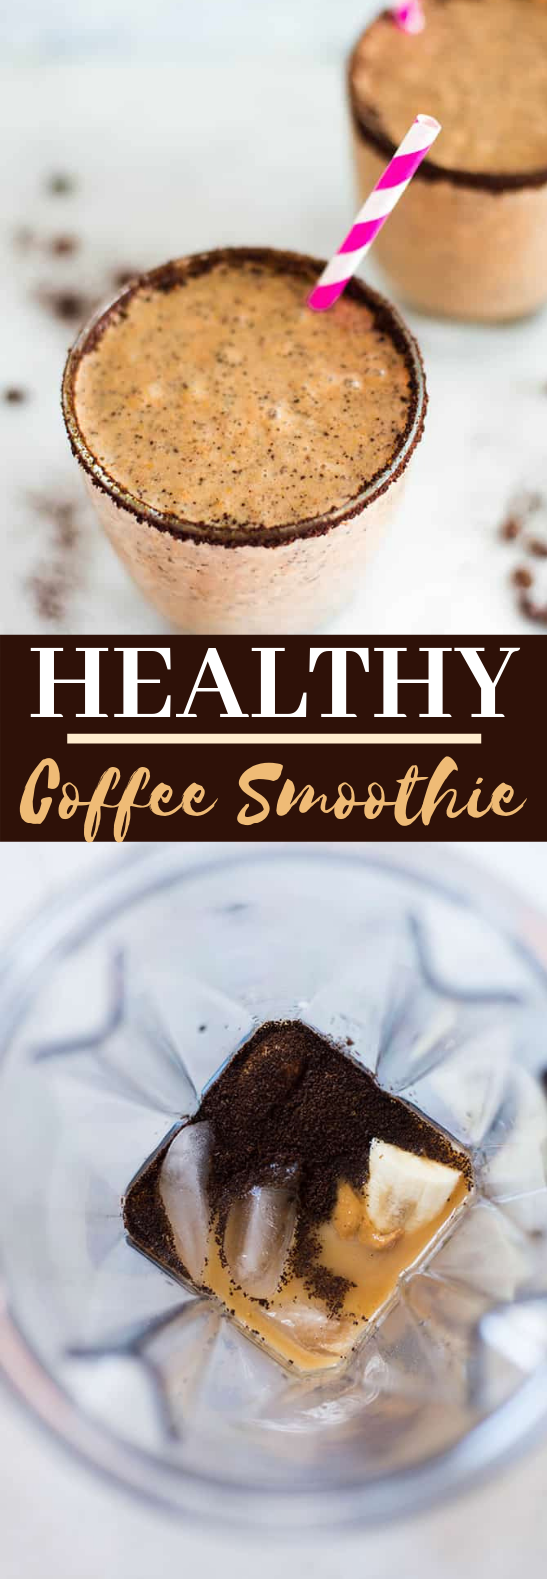 Healthy Coffee Smoothie #drinks #smoothies